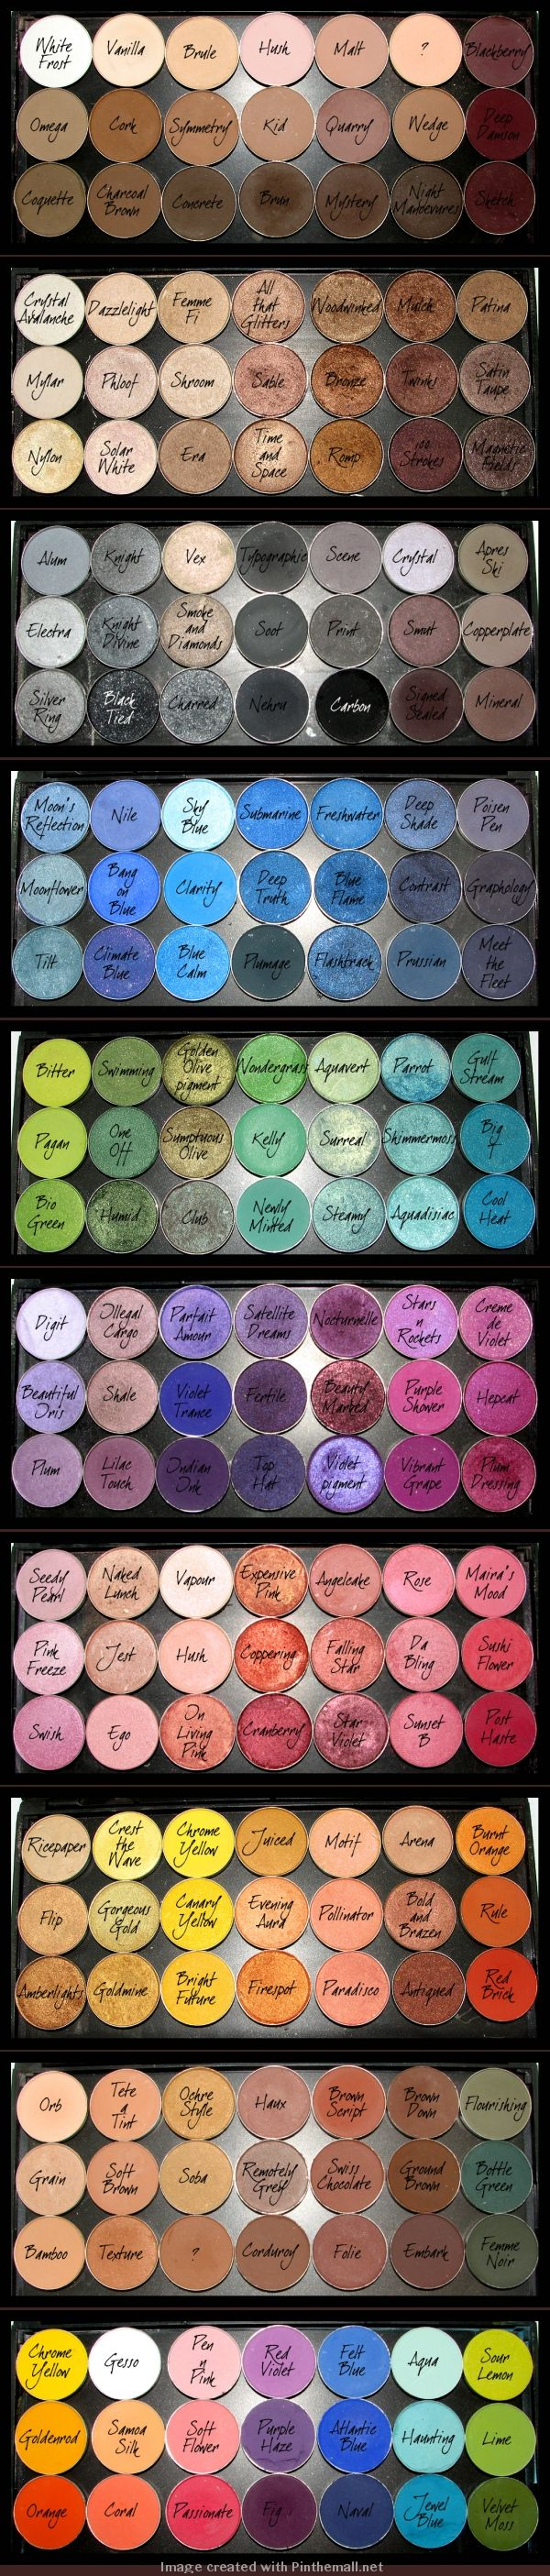 MAC eyeshadows, Omg I want ALL of that!!